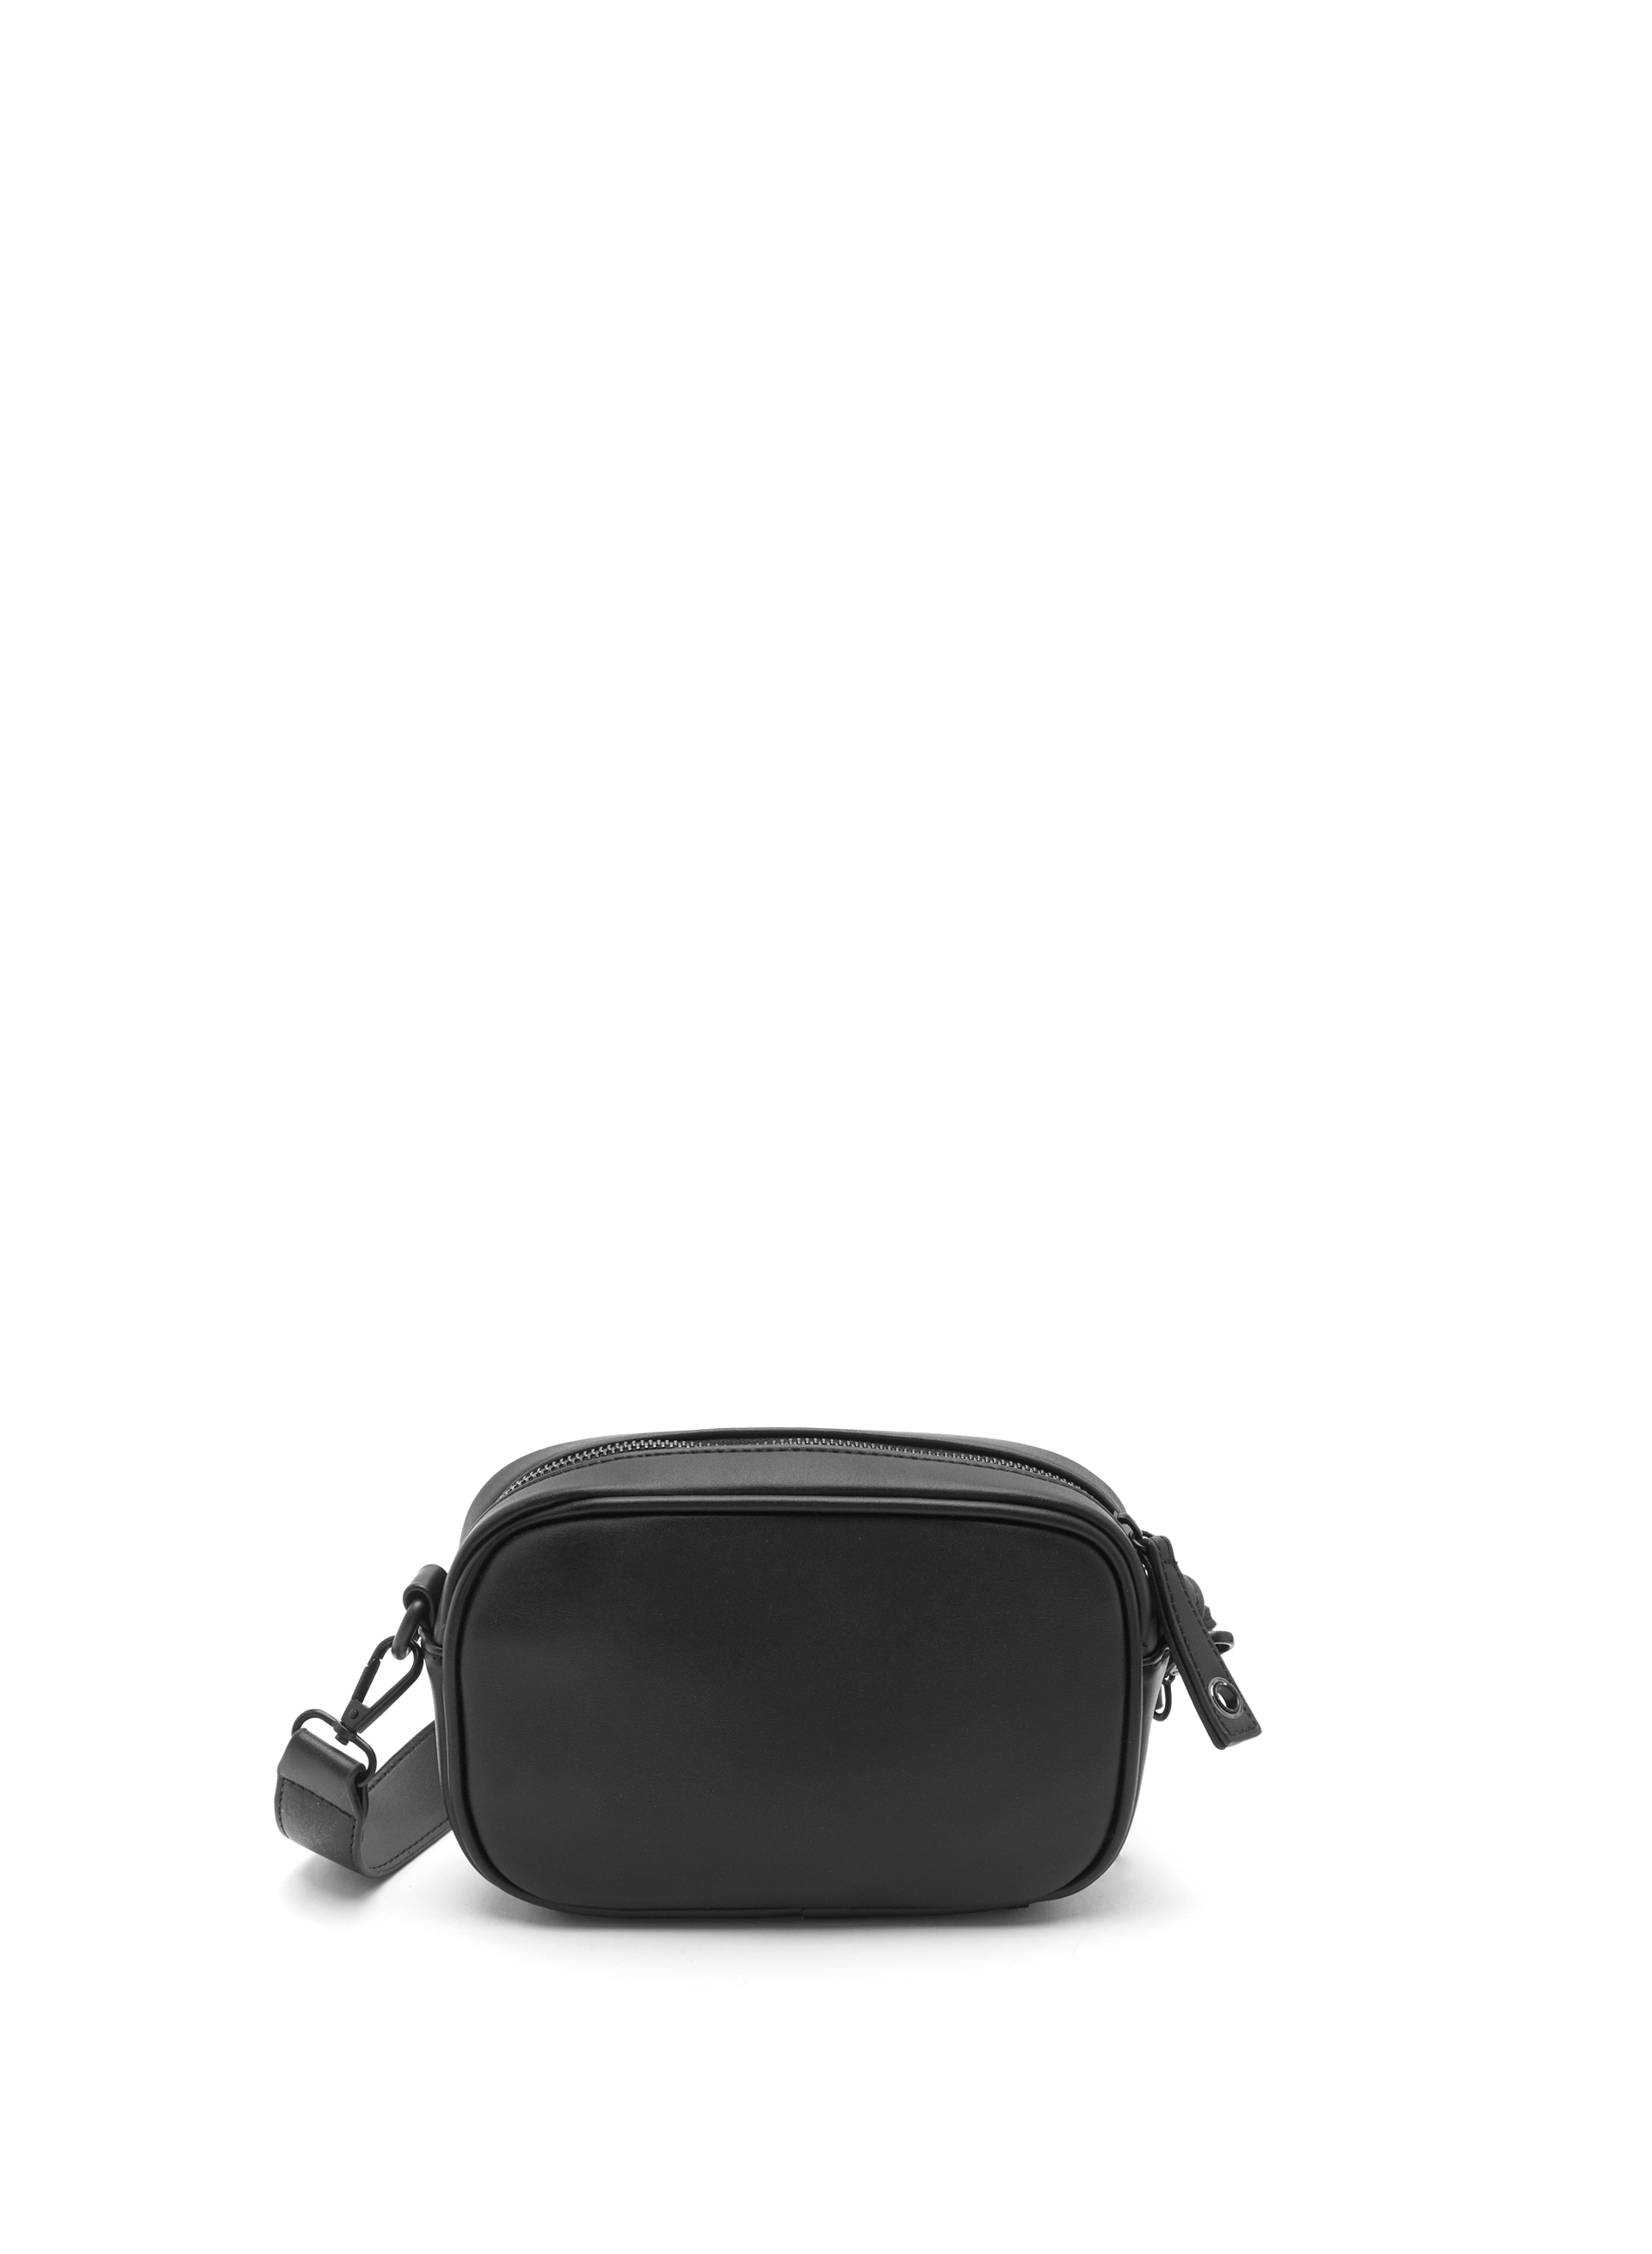 Eyelet Embellished Crossbody Handbag, Black, hi-res